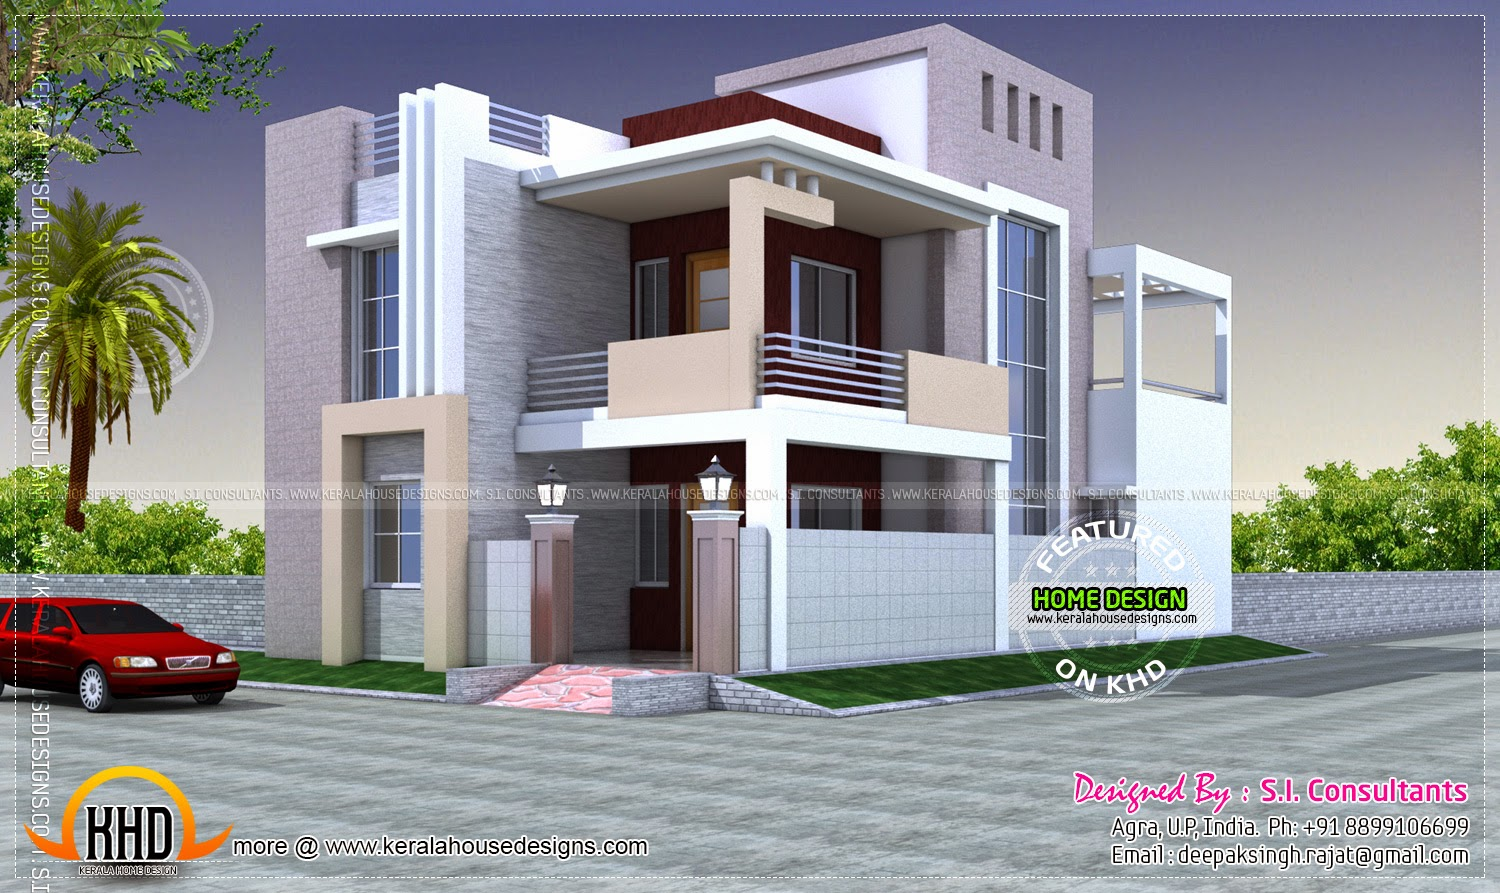 House exterior elevation modern style kerala home design for Home exterior design india